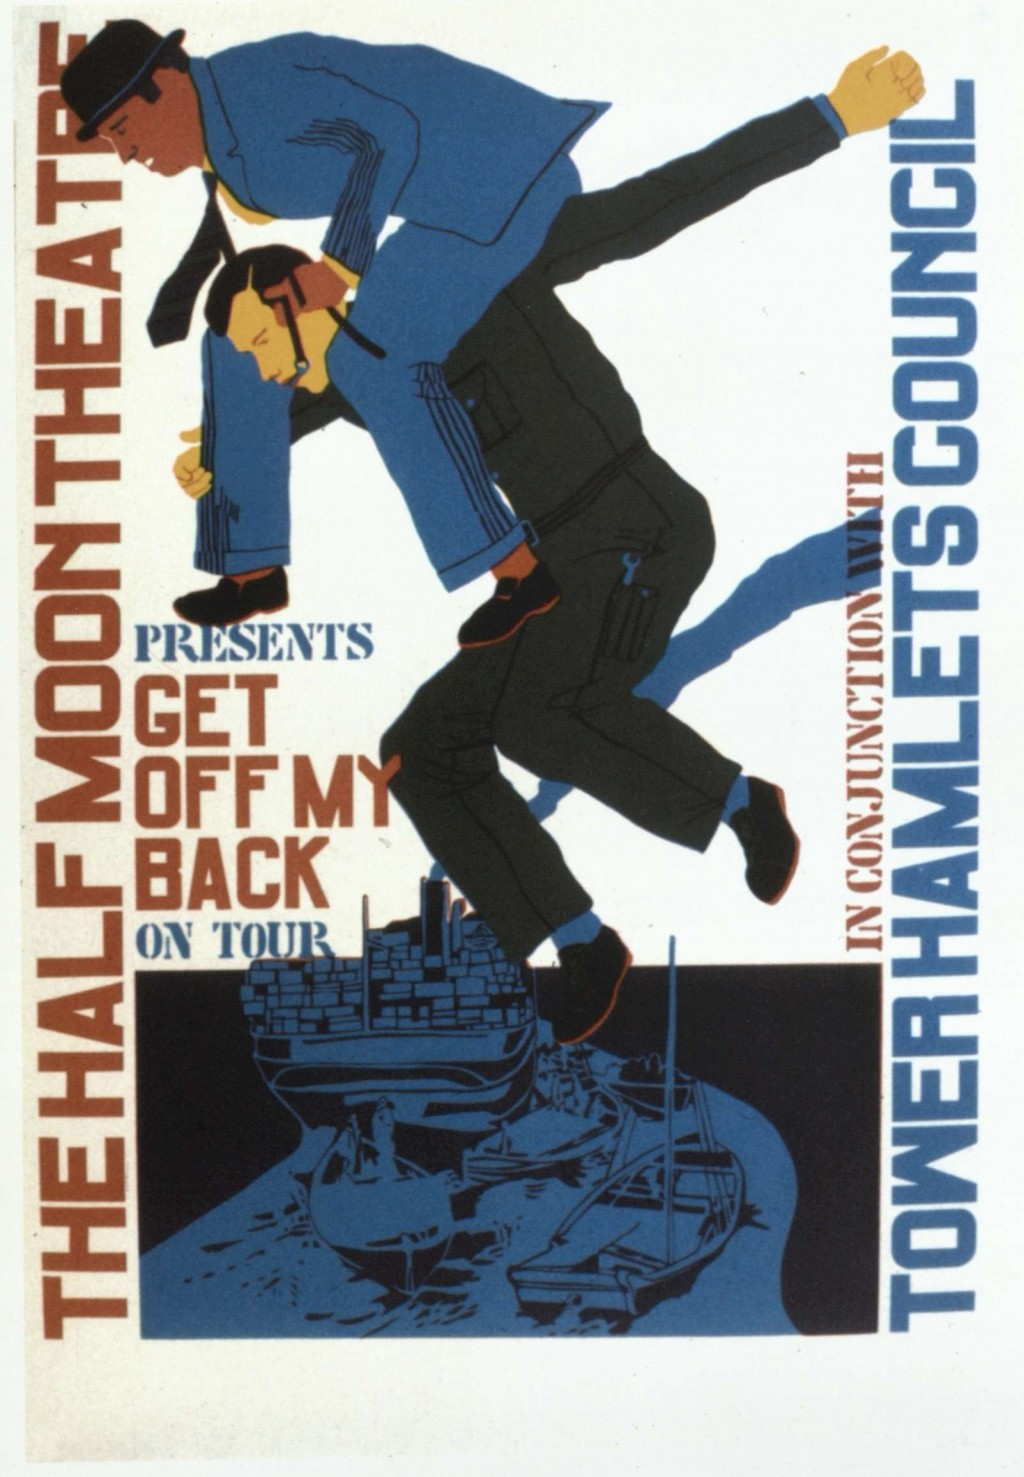 Get off my Back - Poster (Tour)